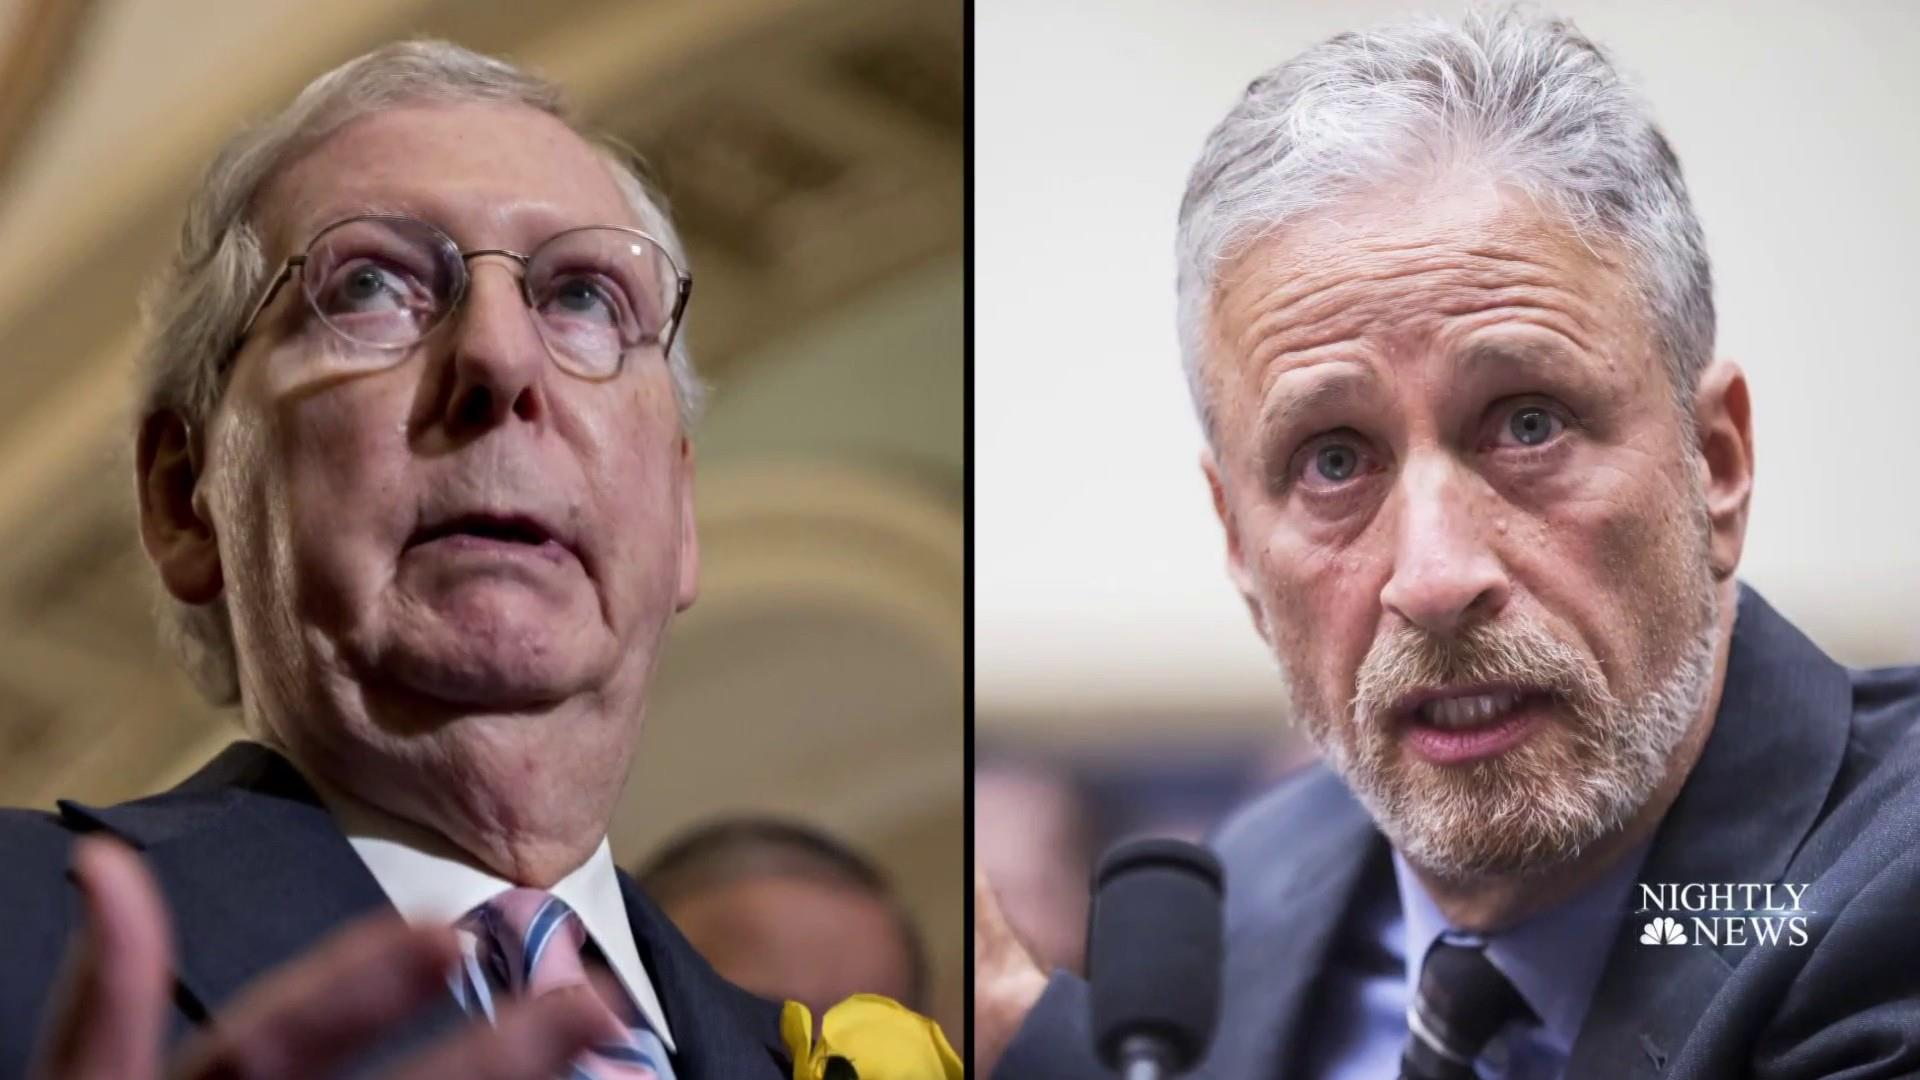 Escalating war of words between Jon Stewart and Mitch McConnell